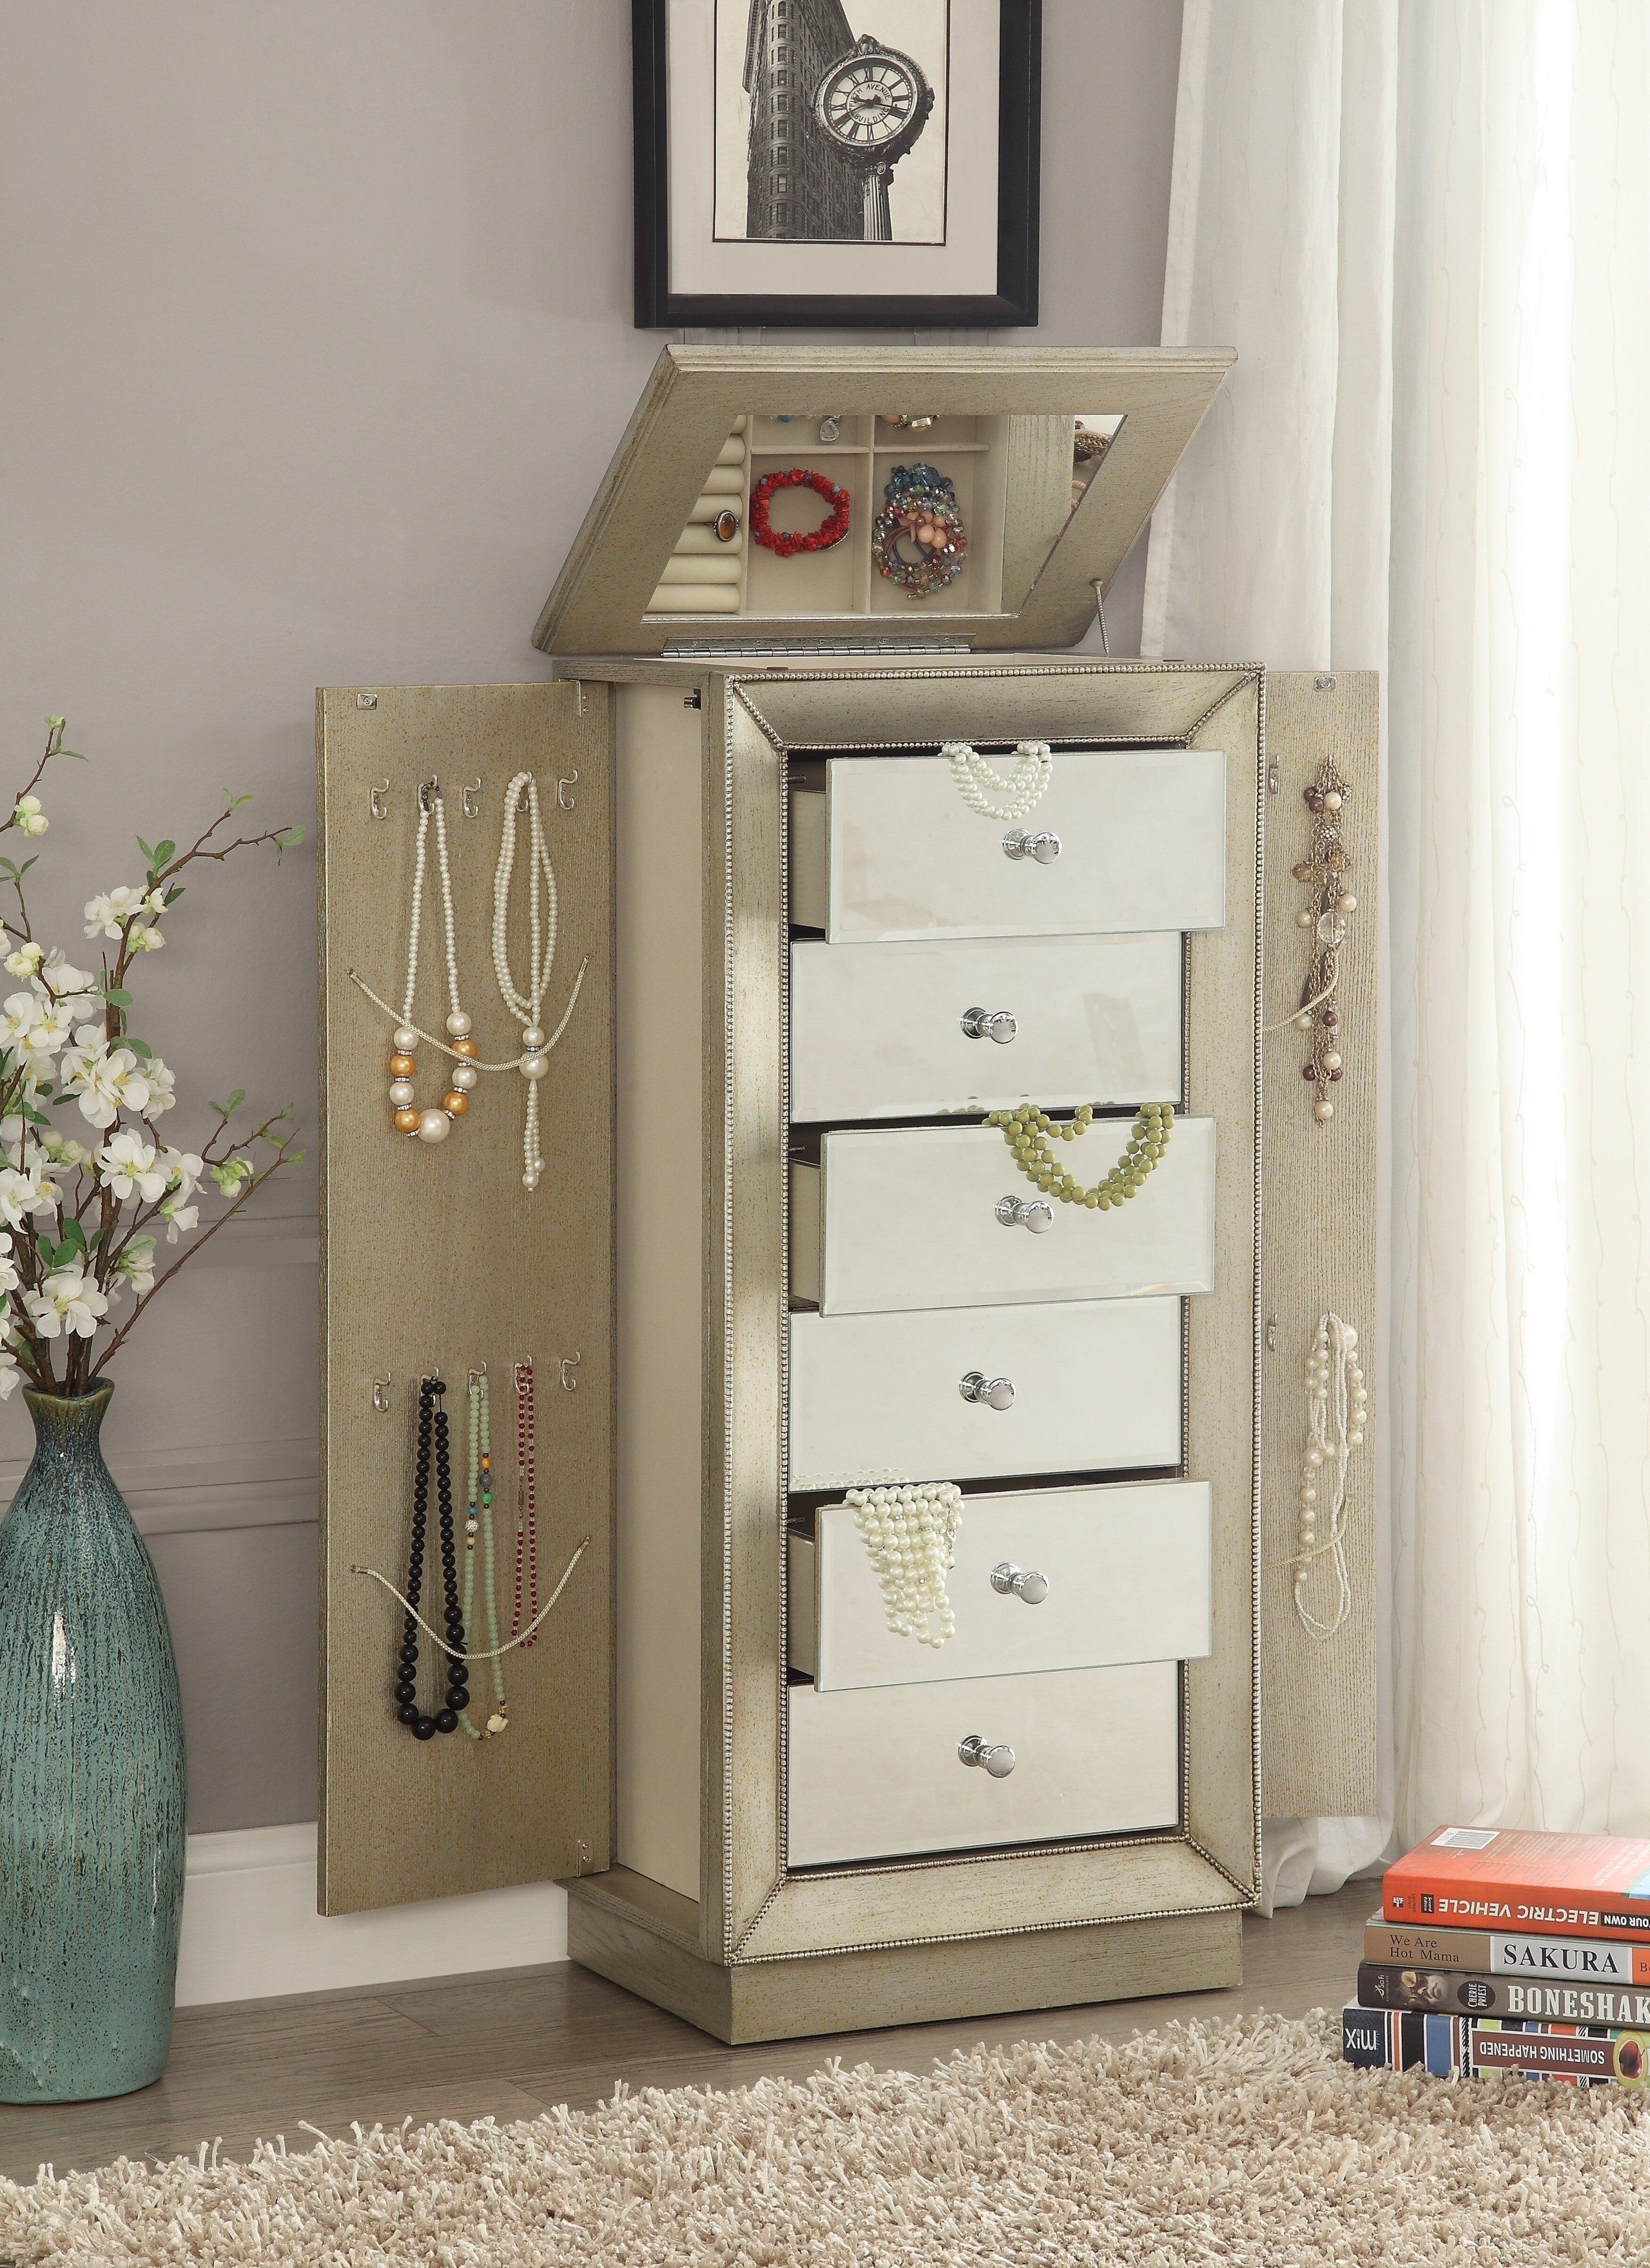 Jewelry Armoire Ikea To Buy Or Not In Ikea Ideas On Foter,Layout For Small Living Room With Fireplace